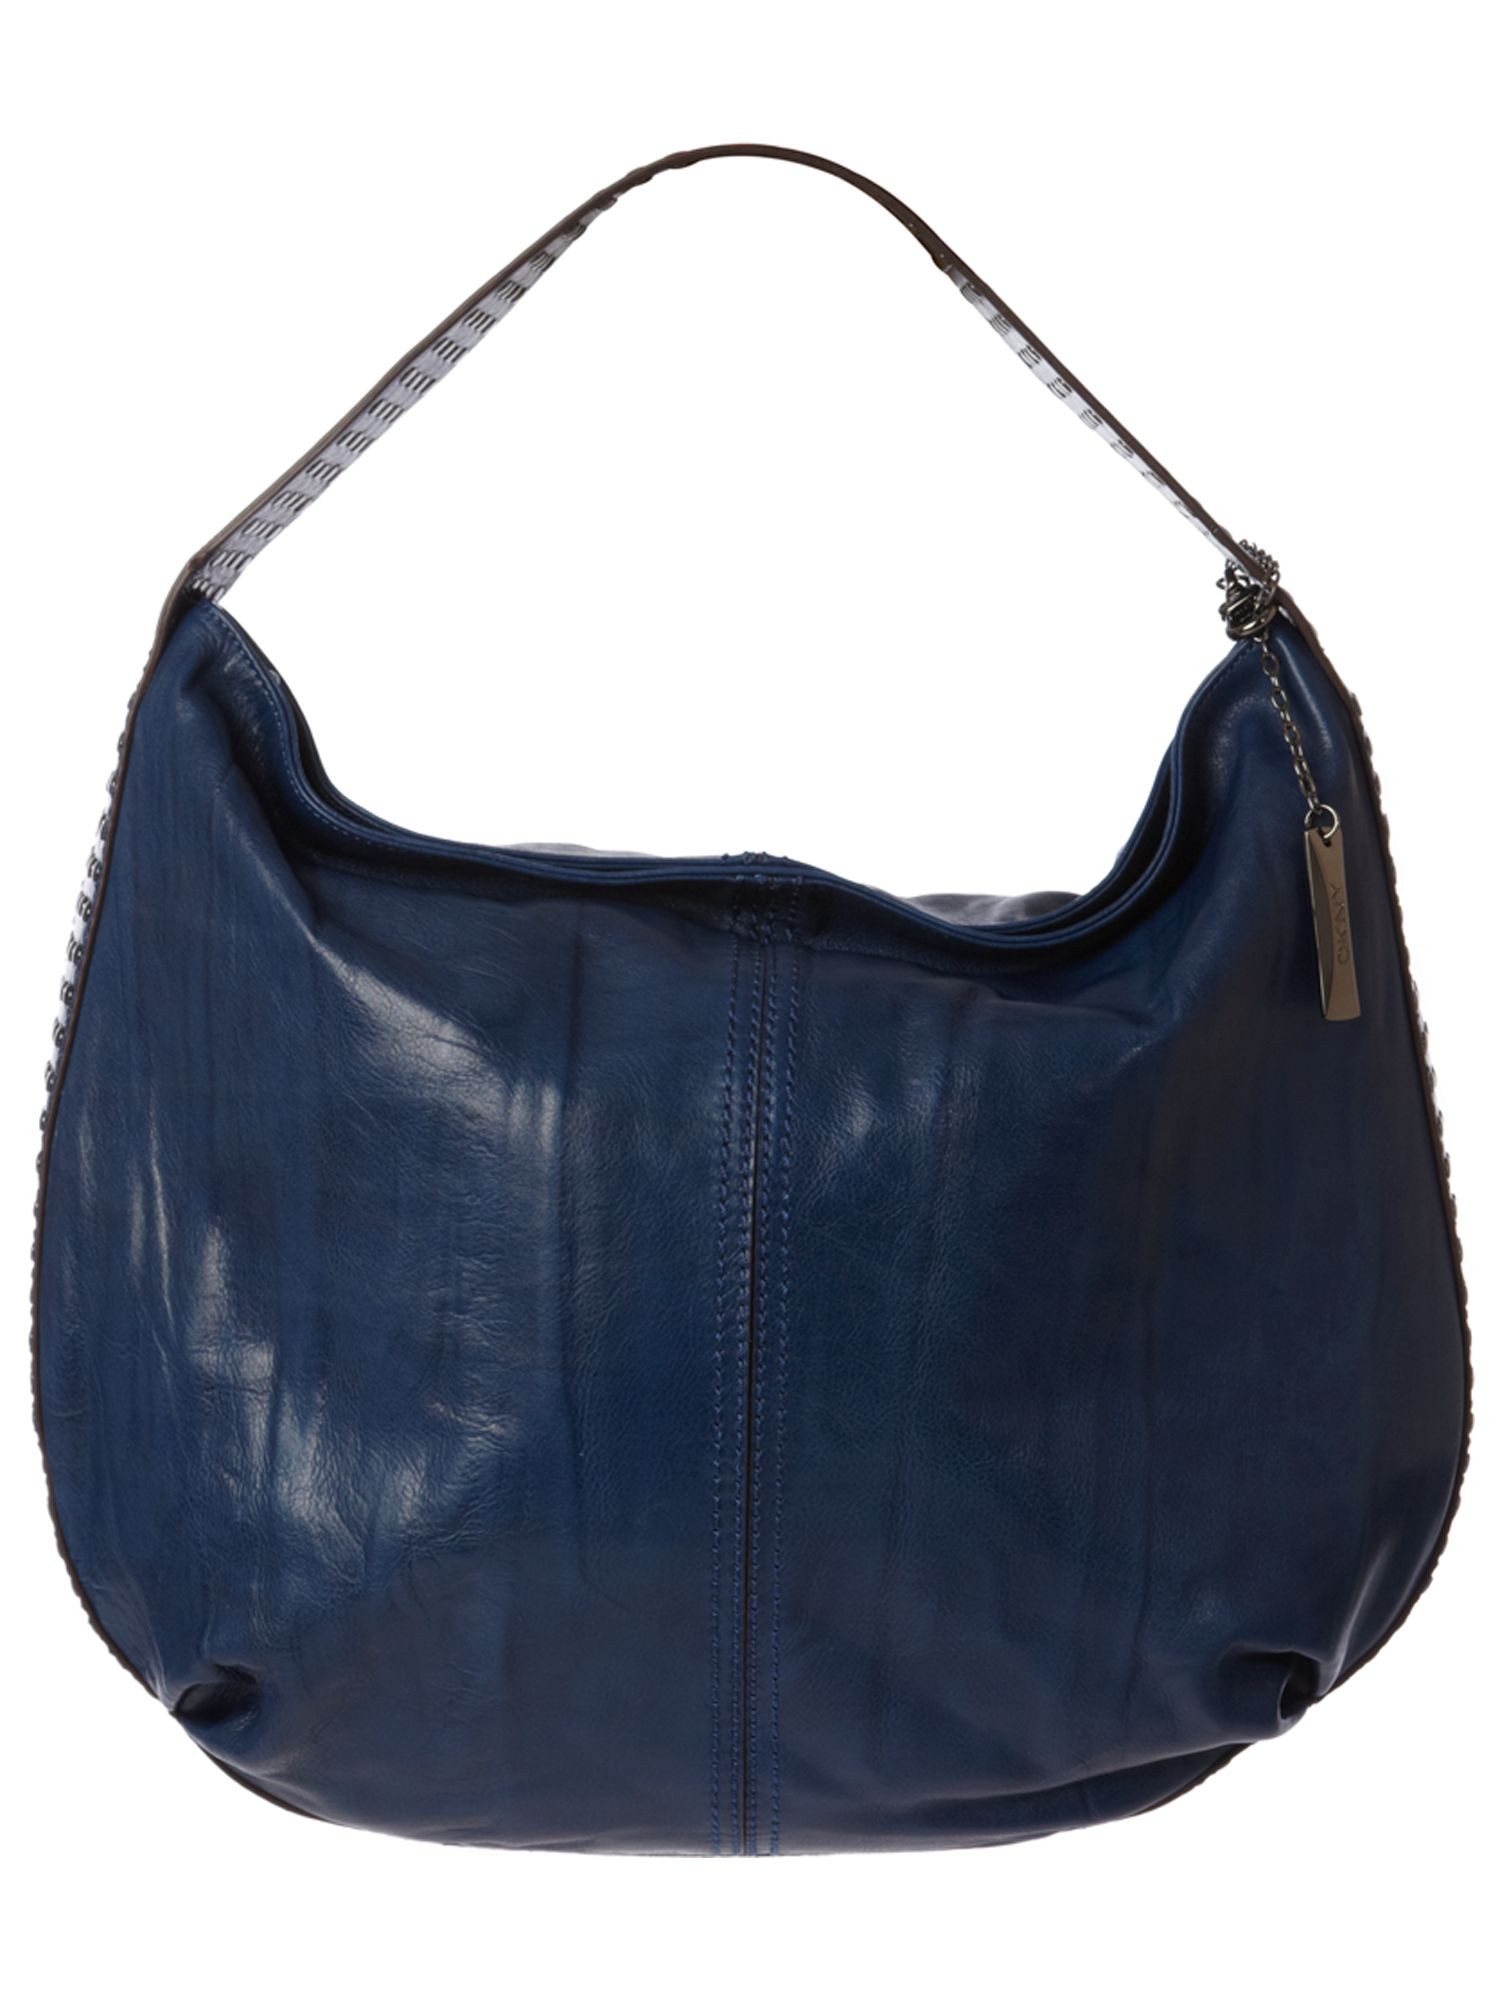 DKNY Burnished Leather Stud large leather hobo bag product image